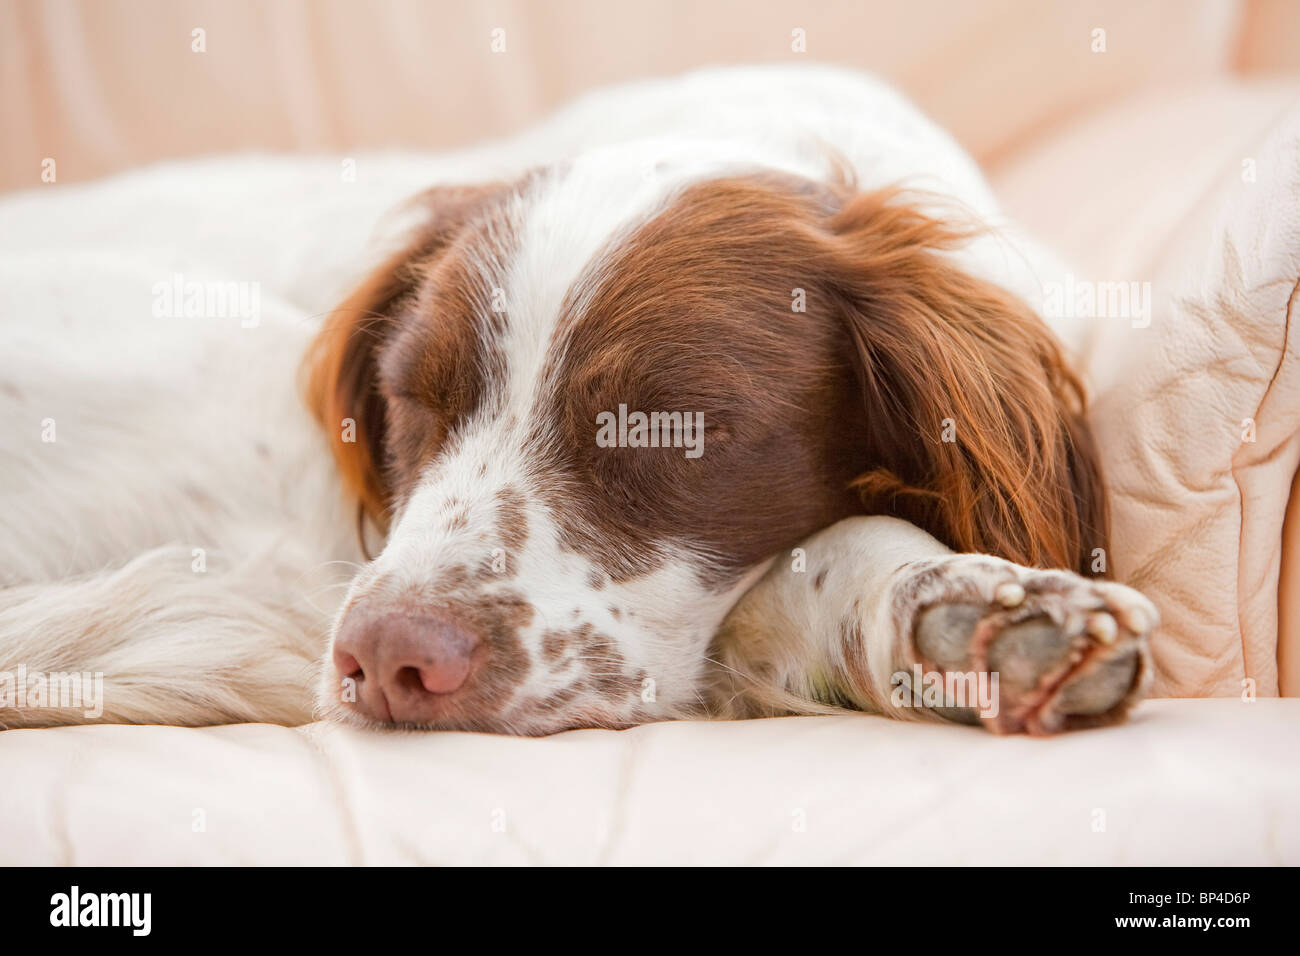 A liver and white English Springer Spaniel working gun dog sleeping on a leather sofa inside a house - Stock Image